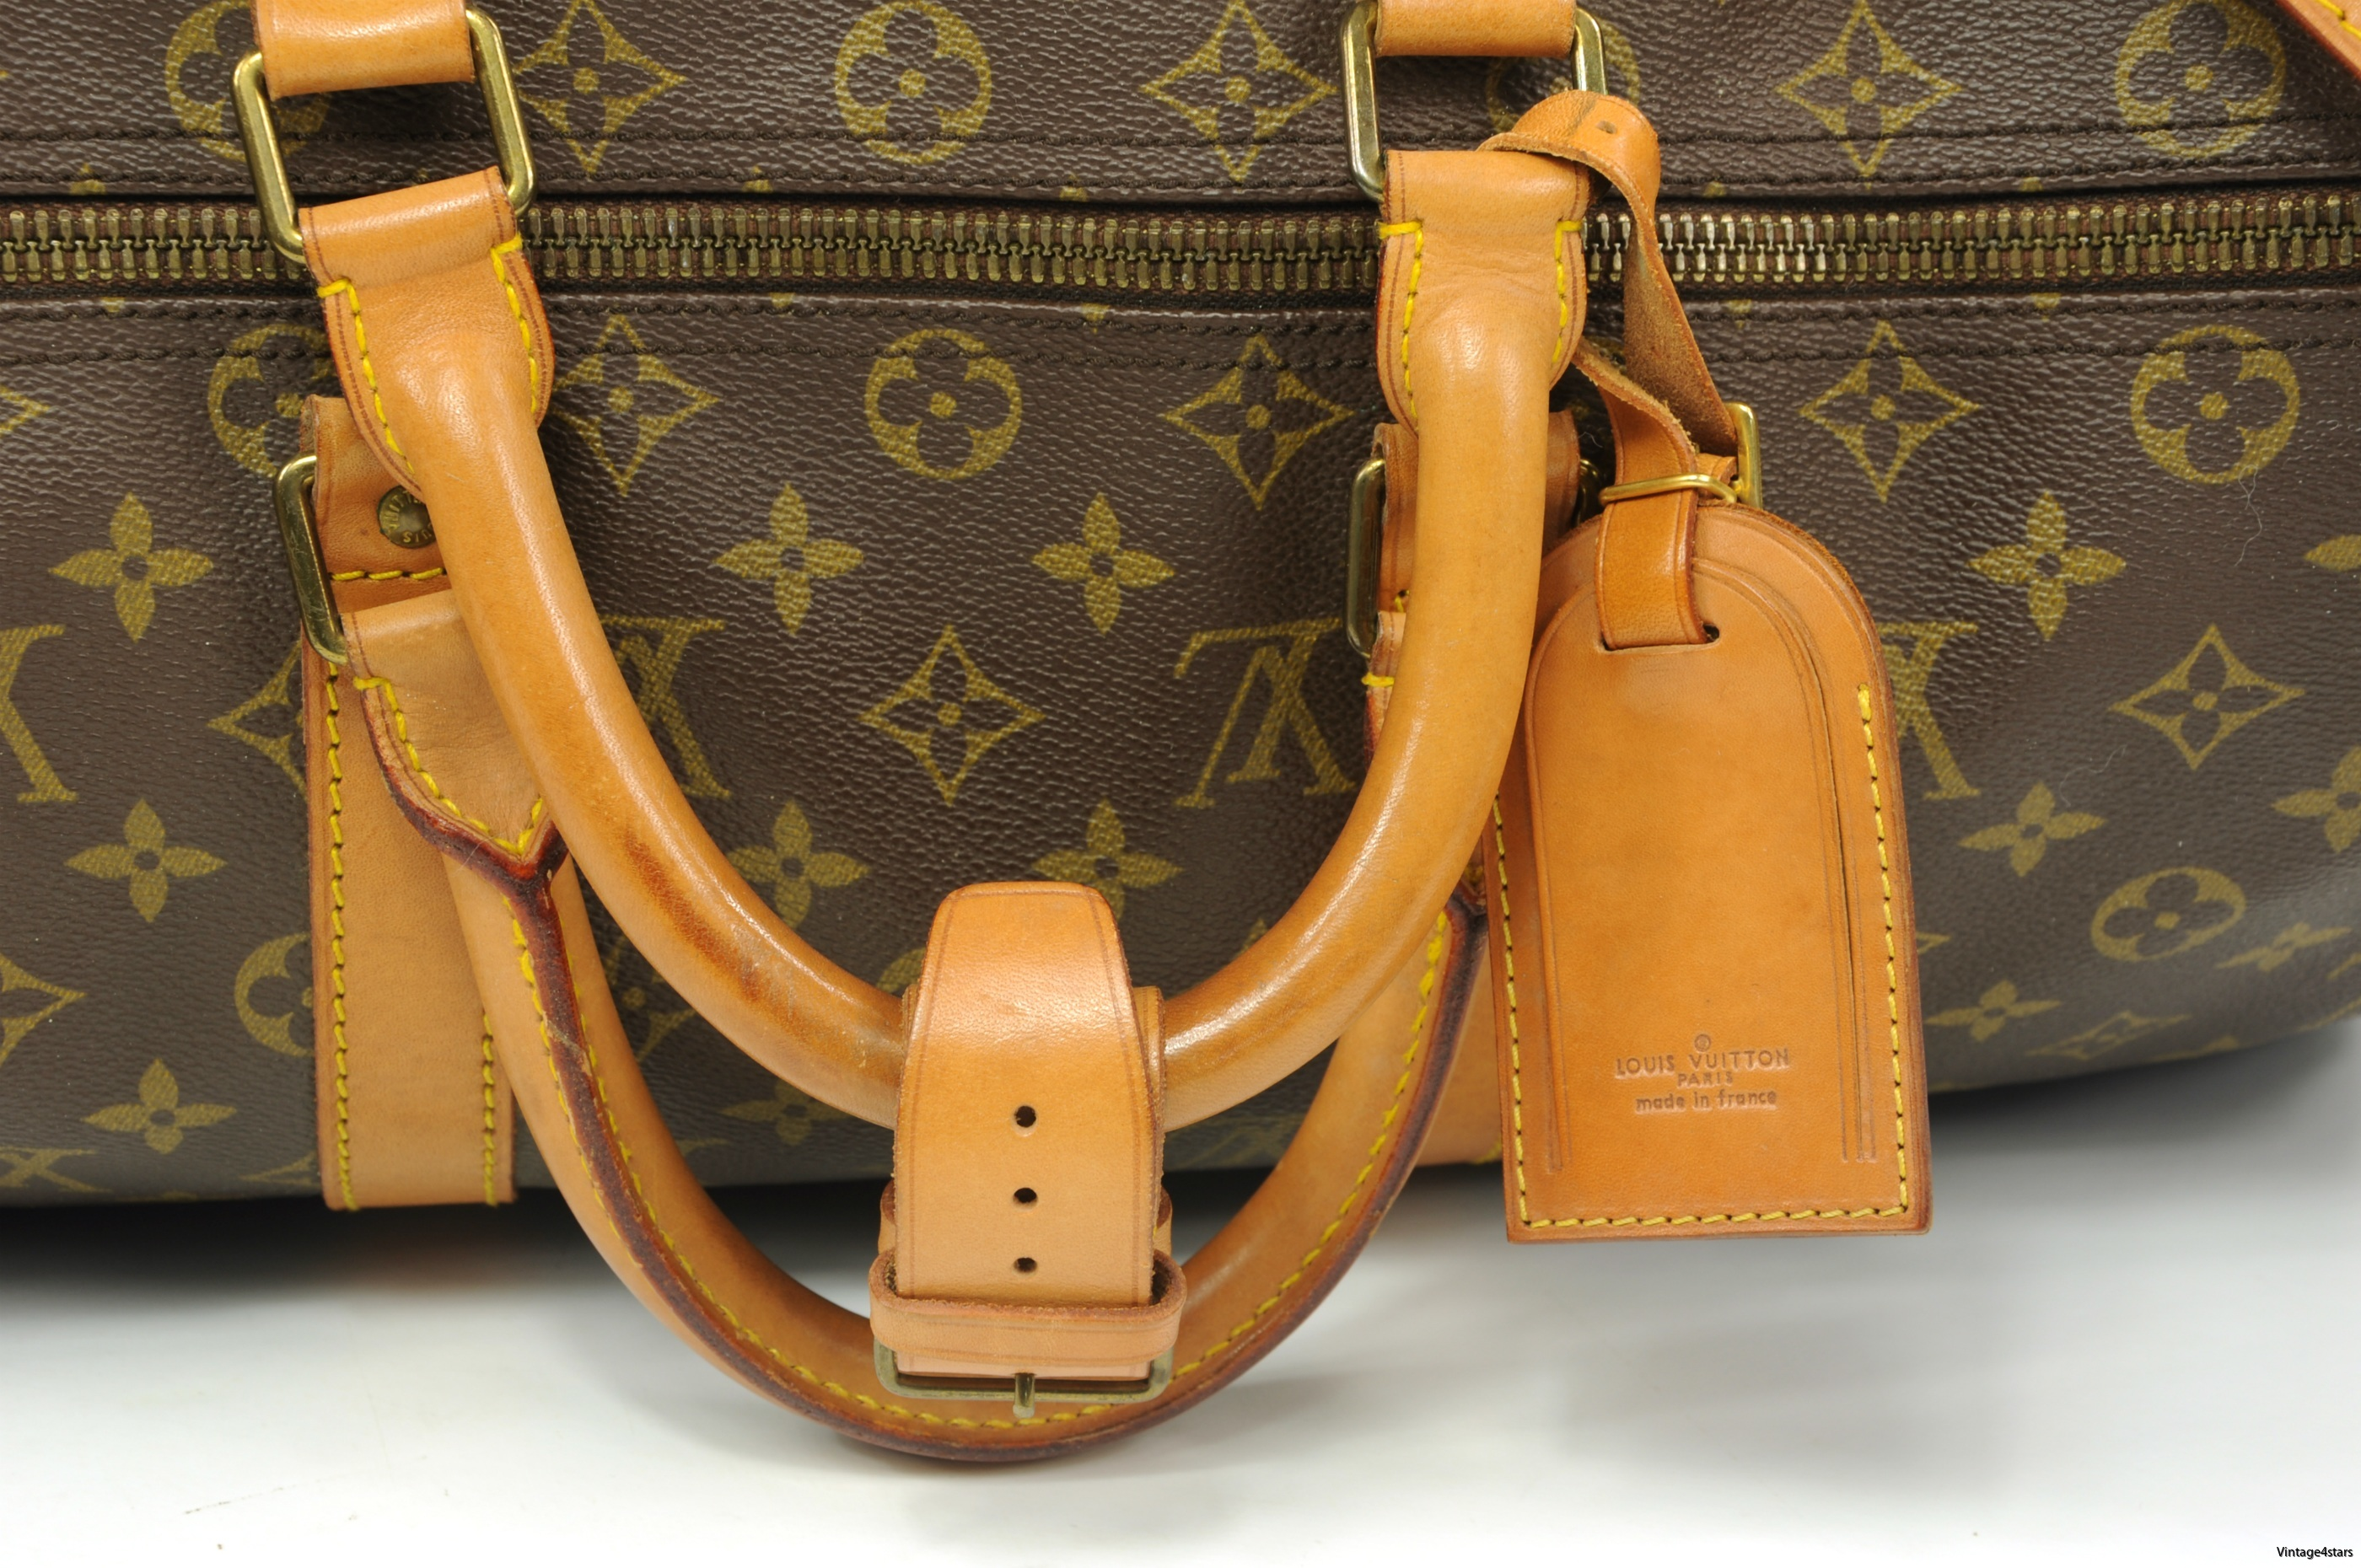 Louis Vuitton Keepall 50 Bandouliere 13